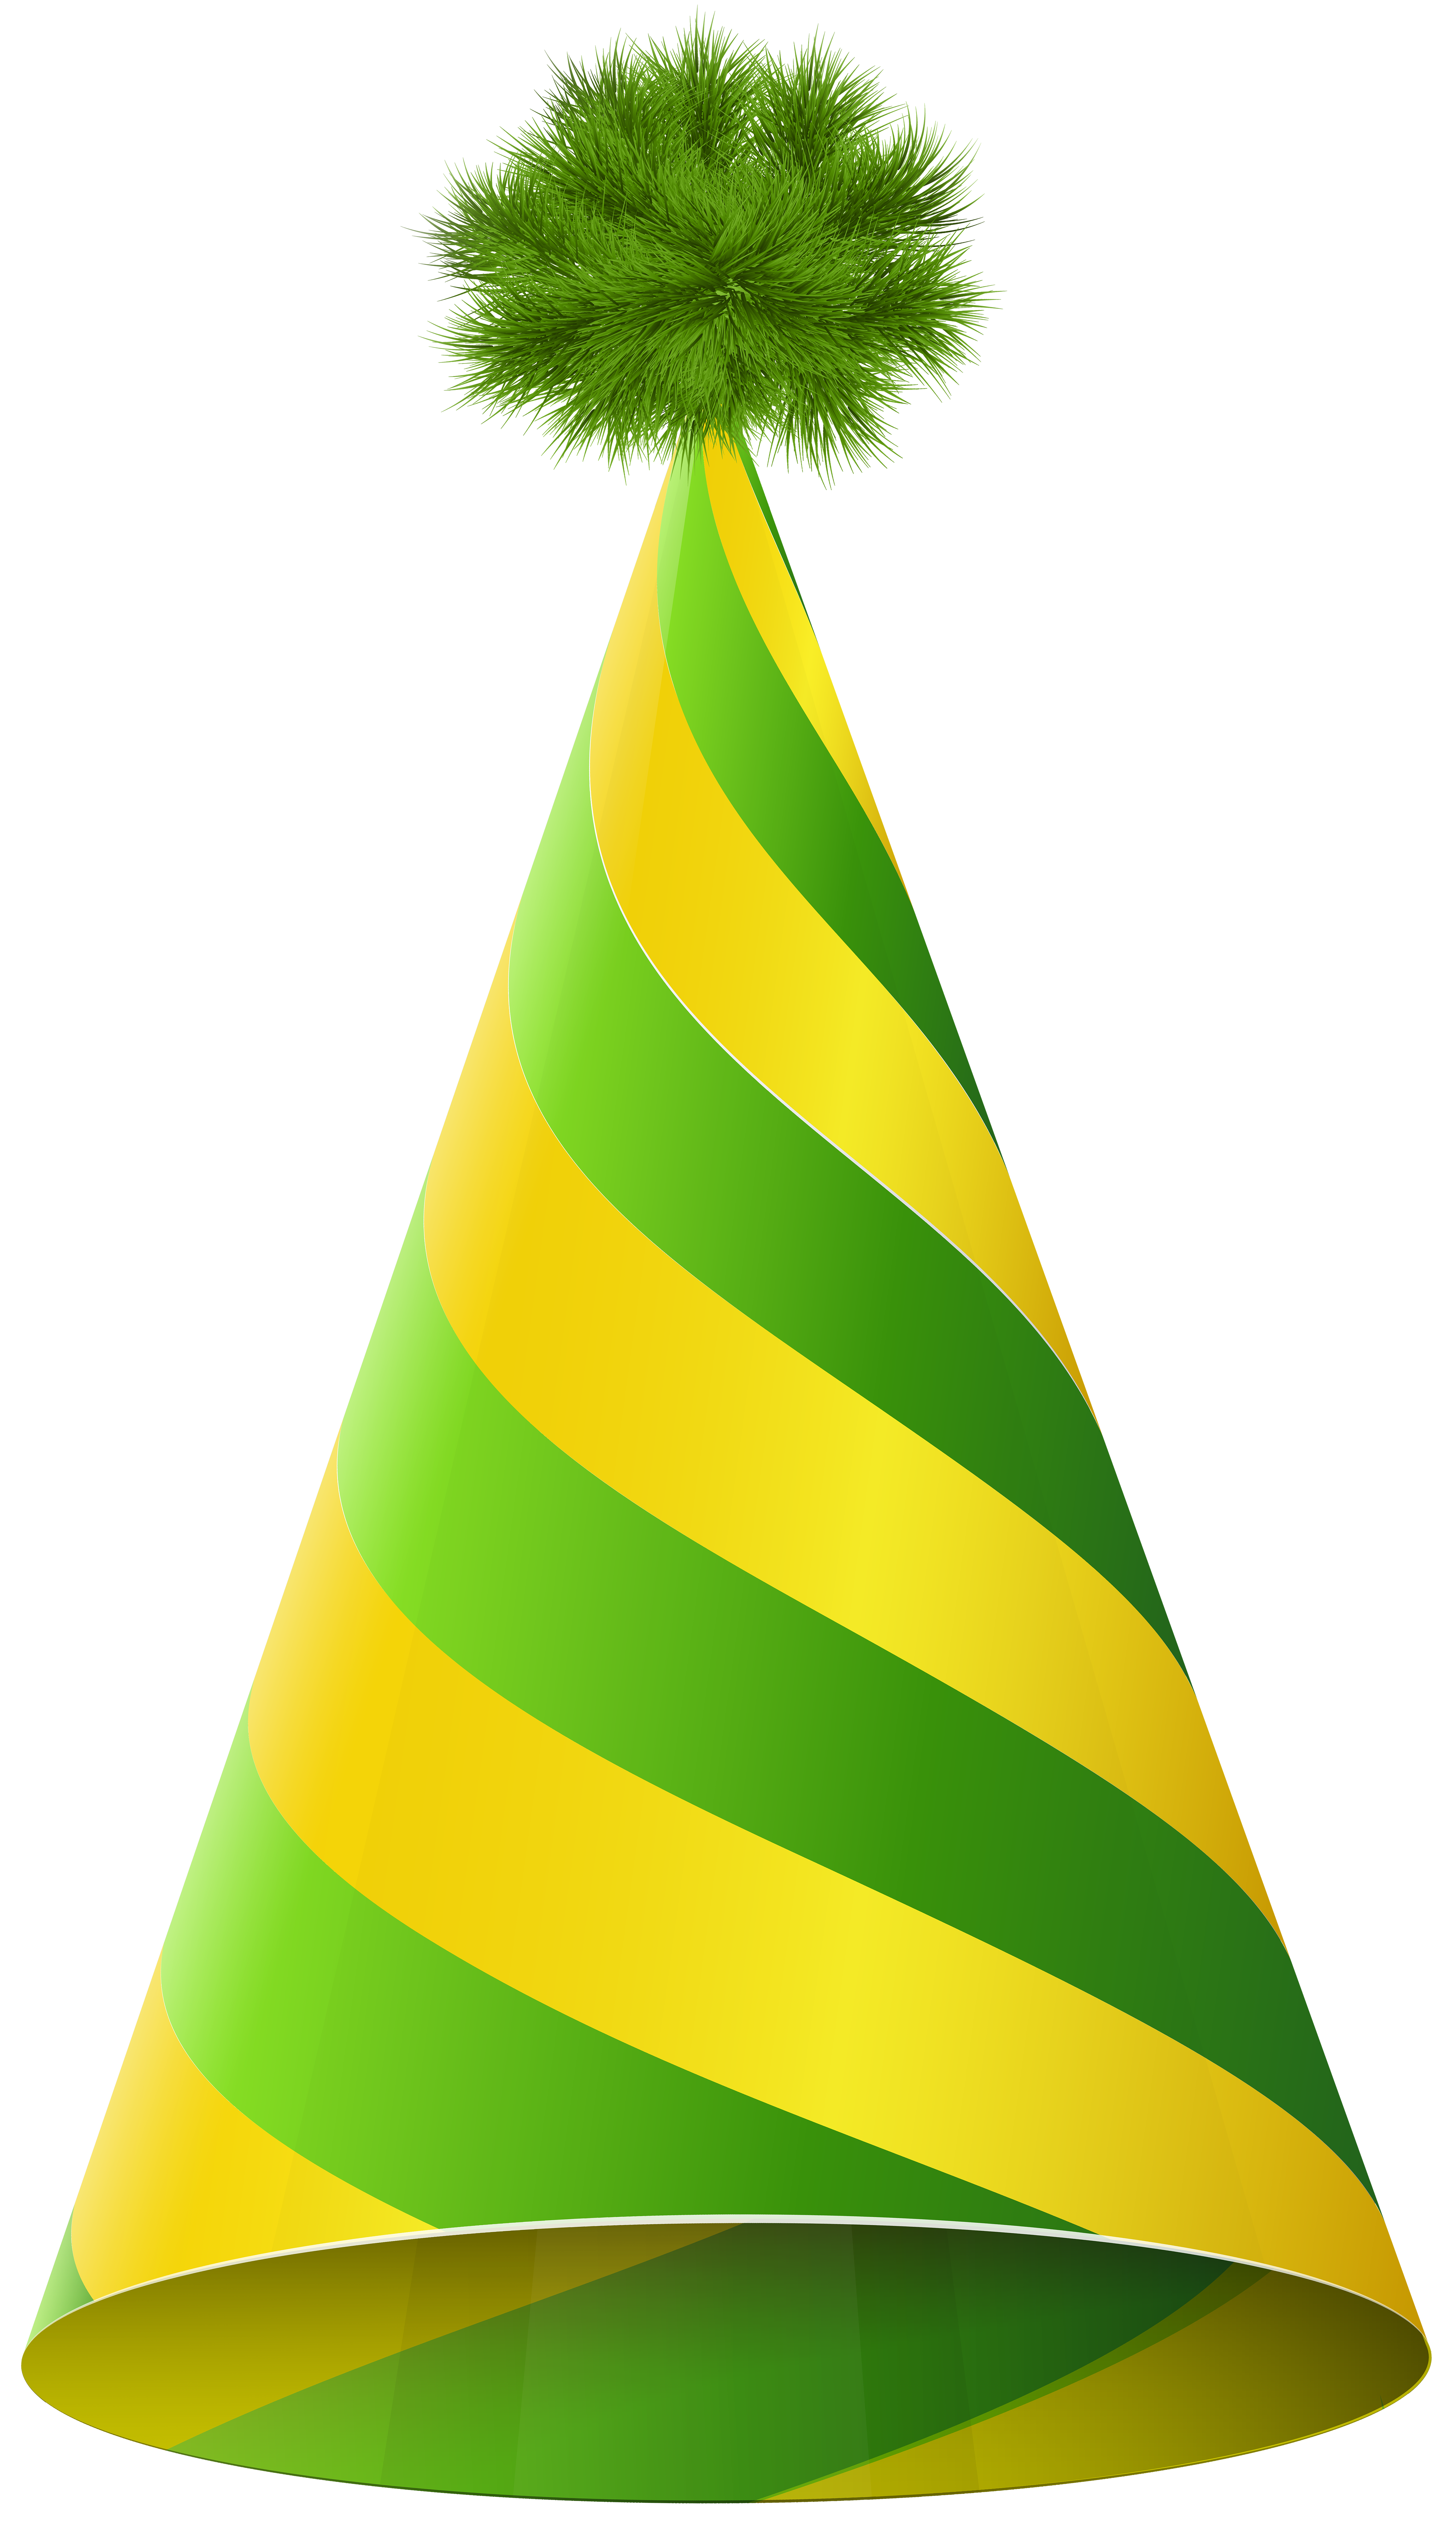 4616x8000 Party Hat Green Yellow Transparent Png Clip Art Imageu200b Gallery